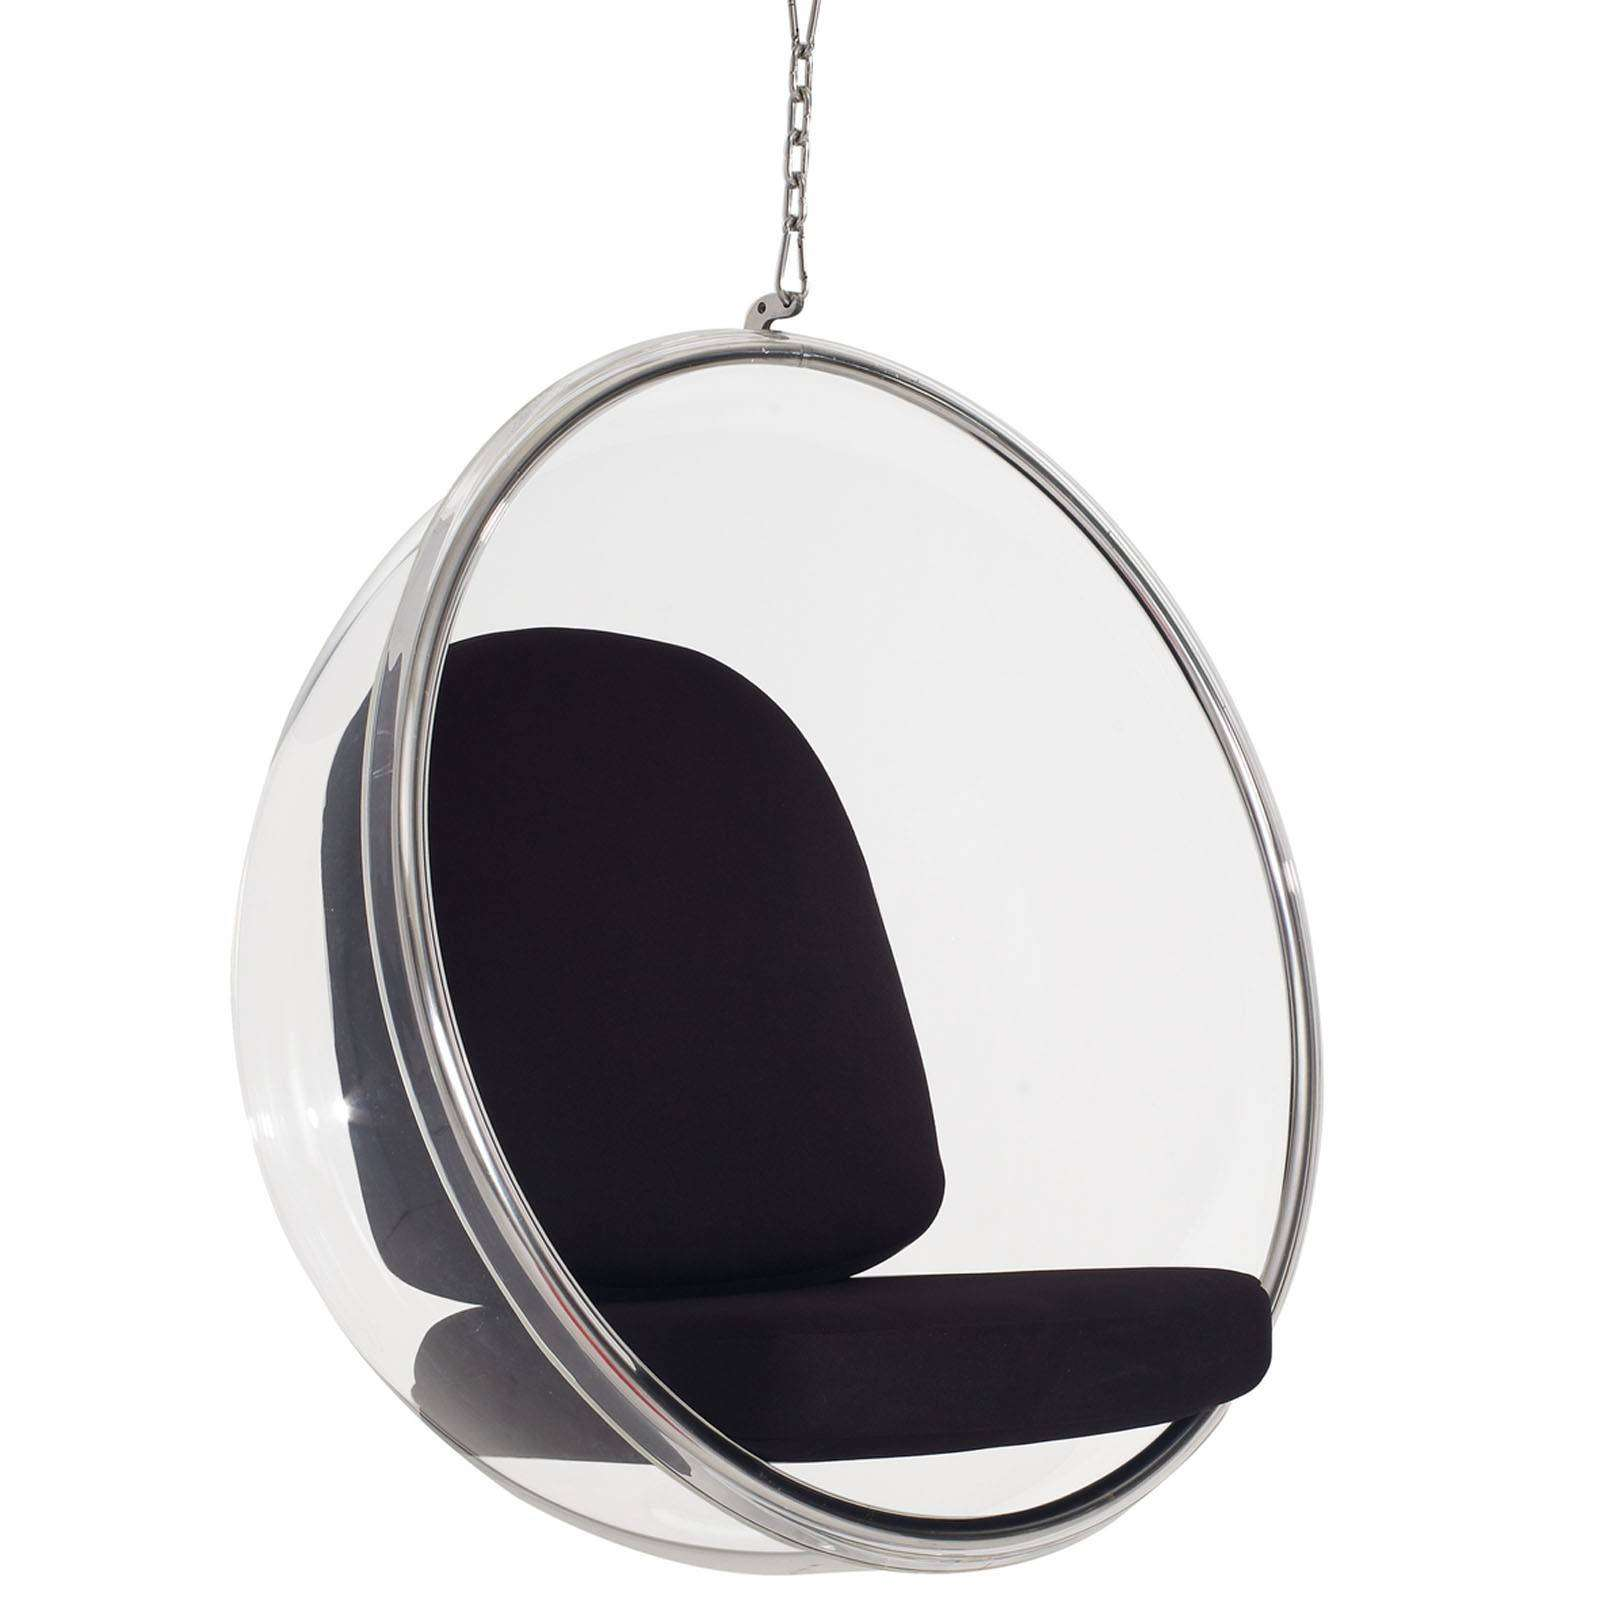 Bubble chair eero aarnio - Bubble Chair Eero Aarnio 8